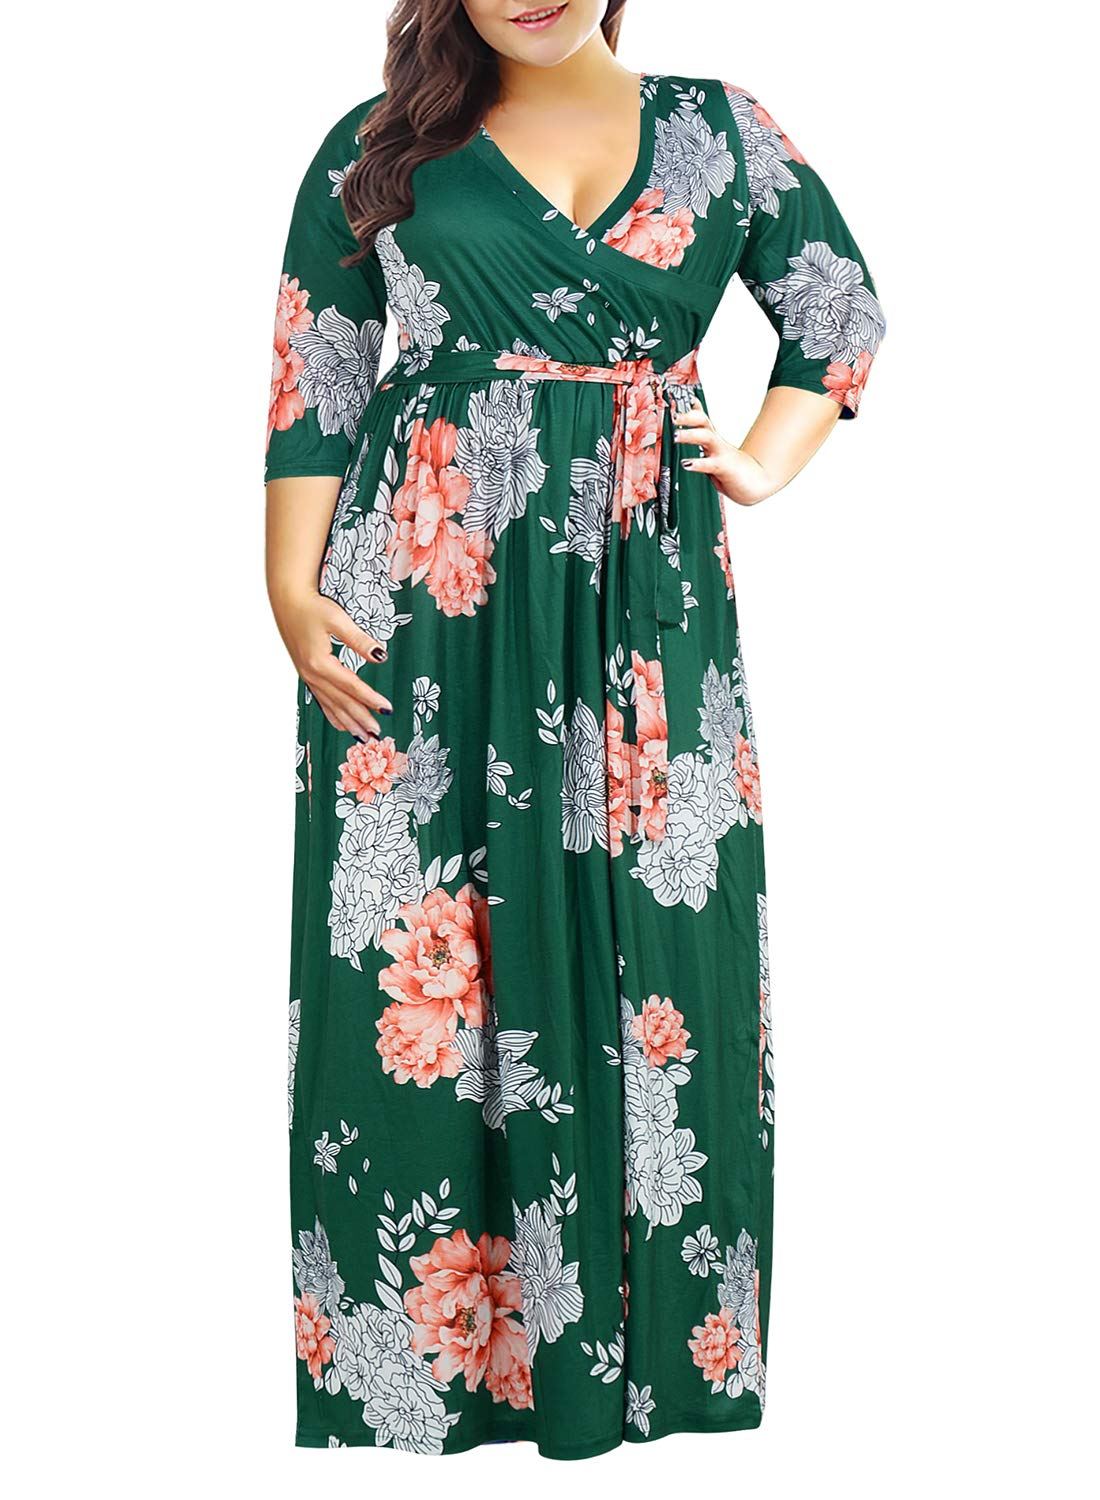 Plus Size Dresses - Women's Plus Size 3/4 Sleeve Faux Wrap Floral Dress With Belt